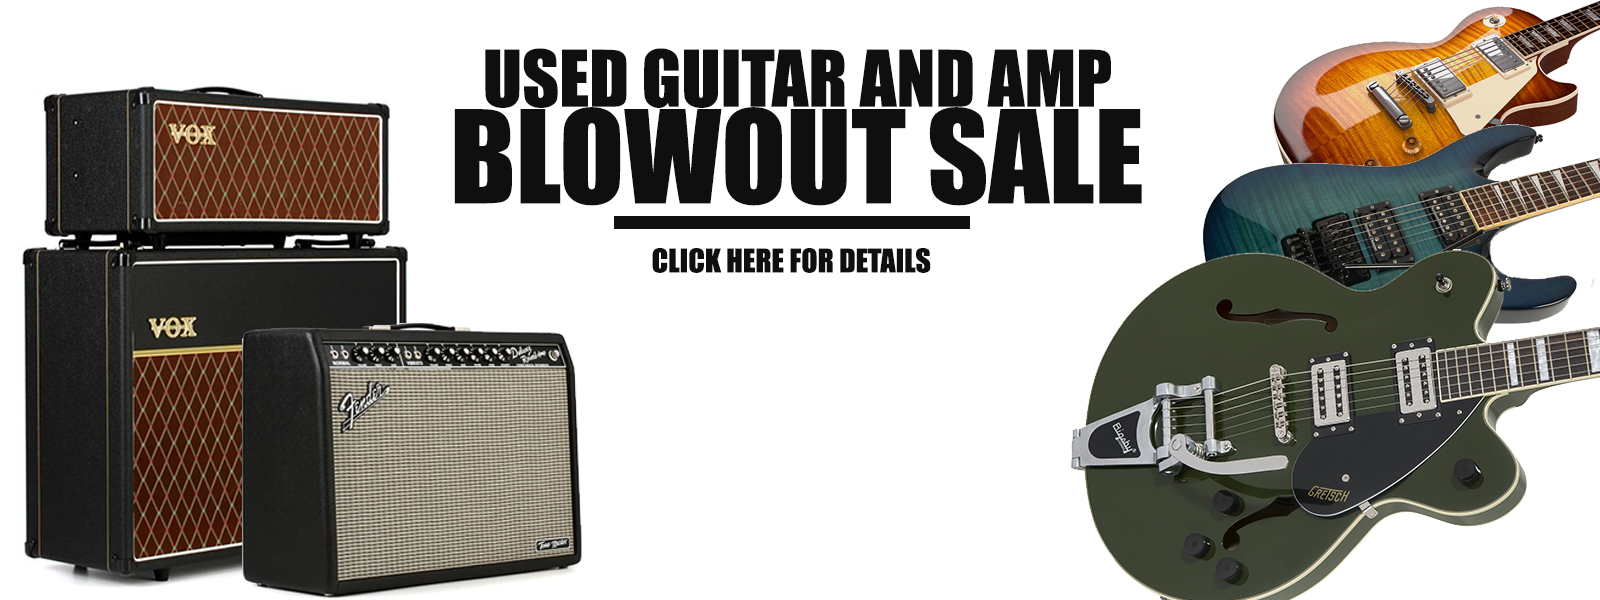 blow-out-guitar-sale.jpg